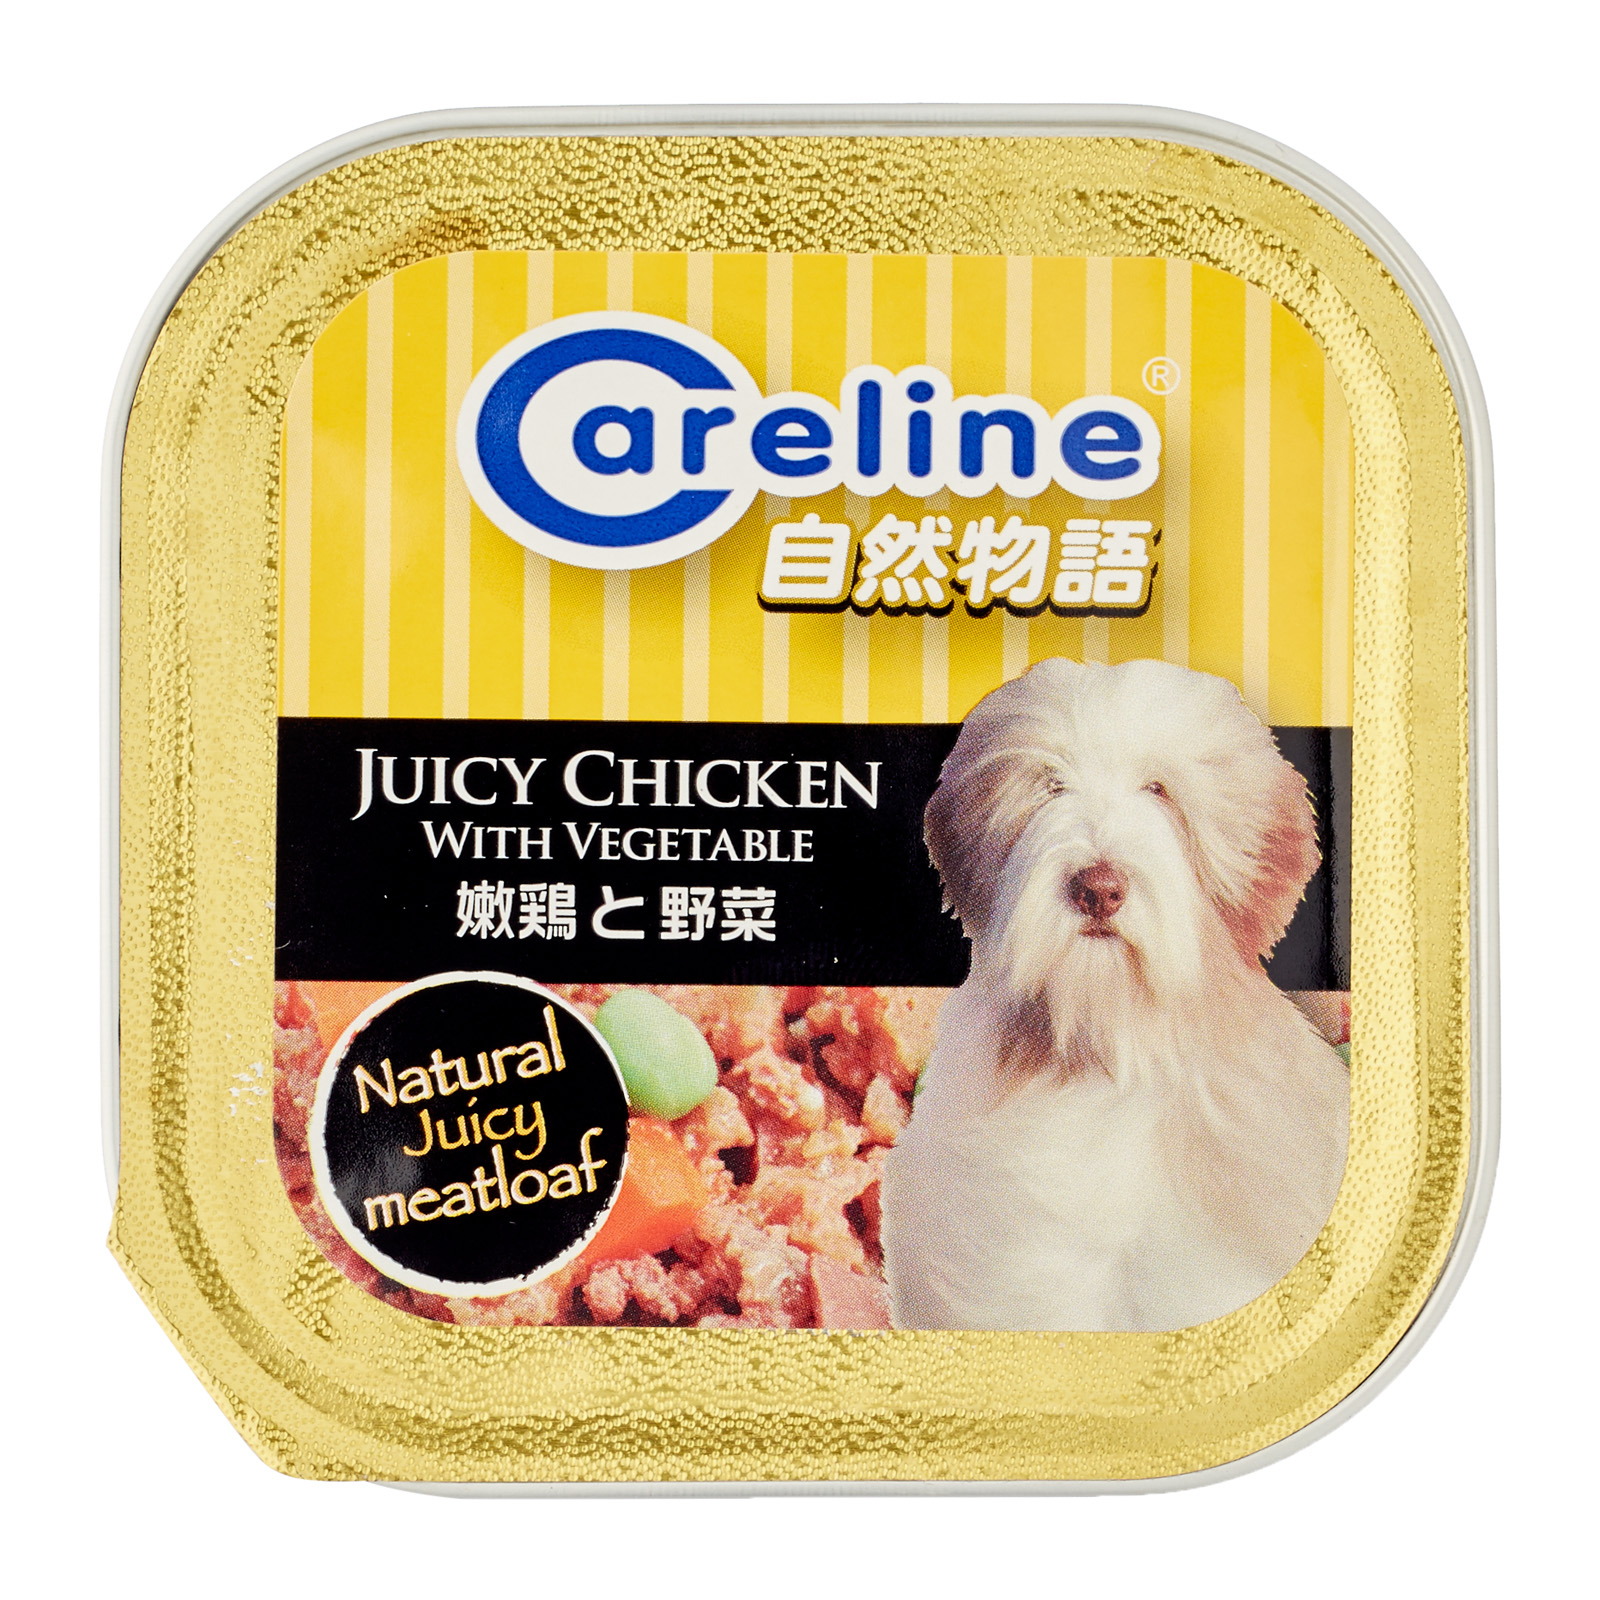 Careline Juicy Chicken with Vegetable 80g